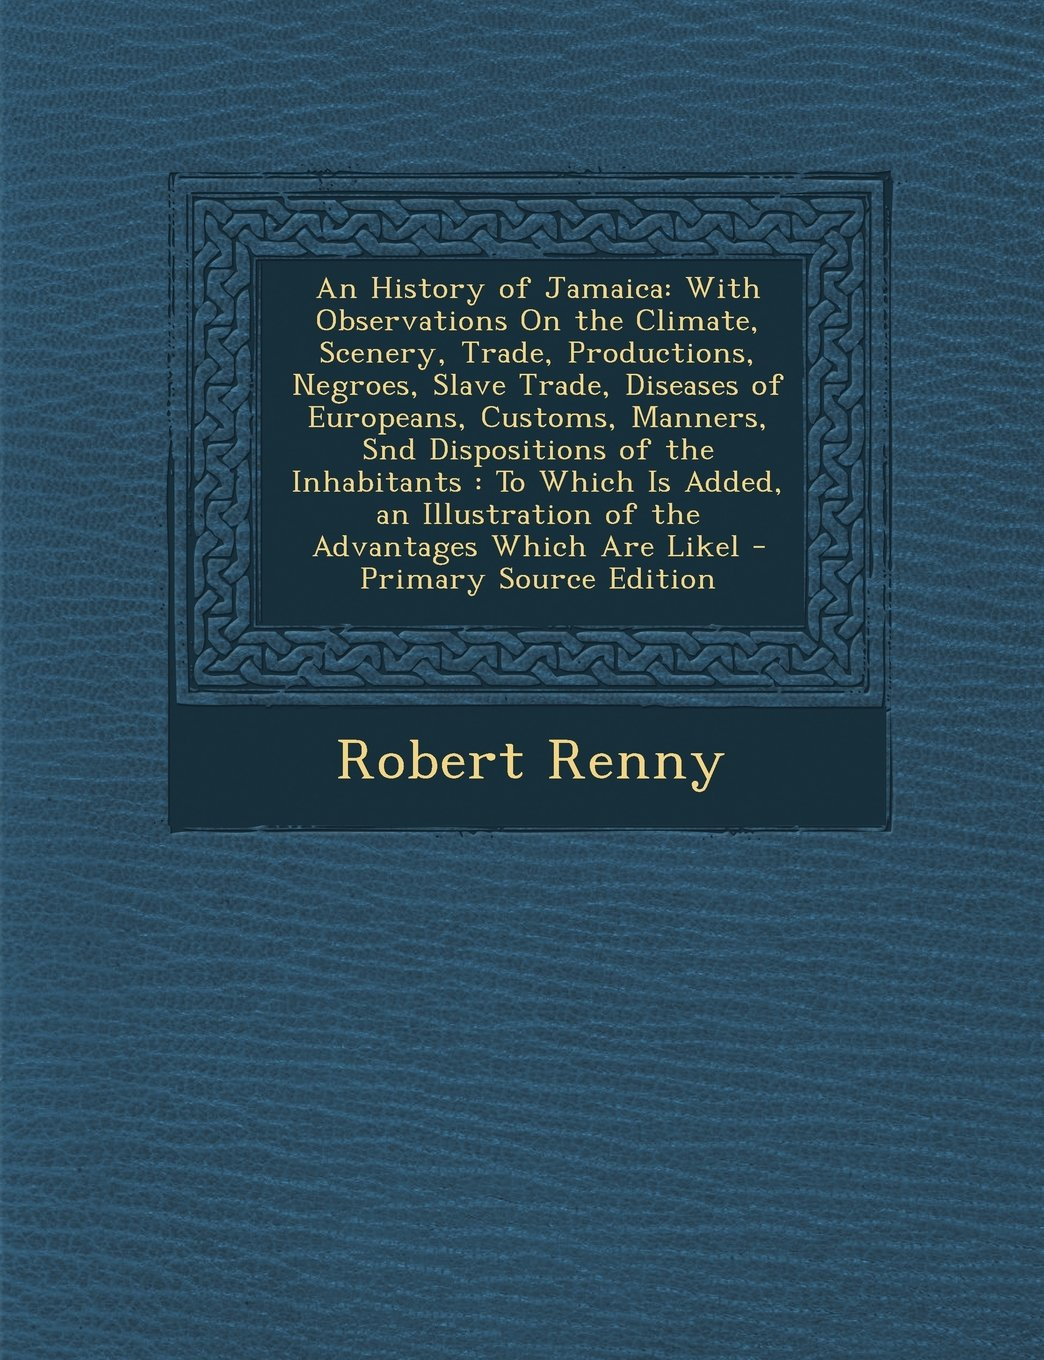 An History of Jamaica: With Observations on the Climate, Scenery, Trade, Productions, Negroes, Slave Trade, Diseases of Europeans, Customs, M